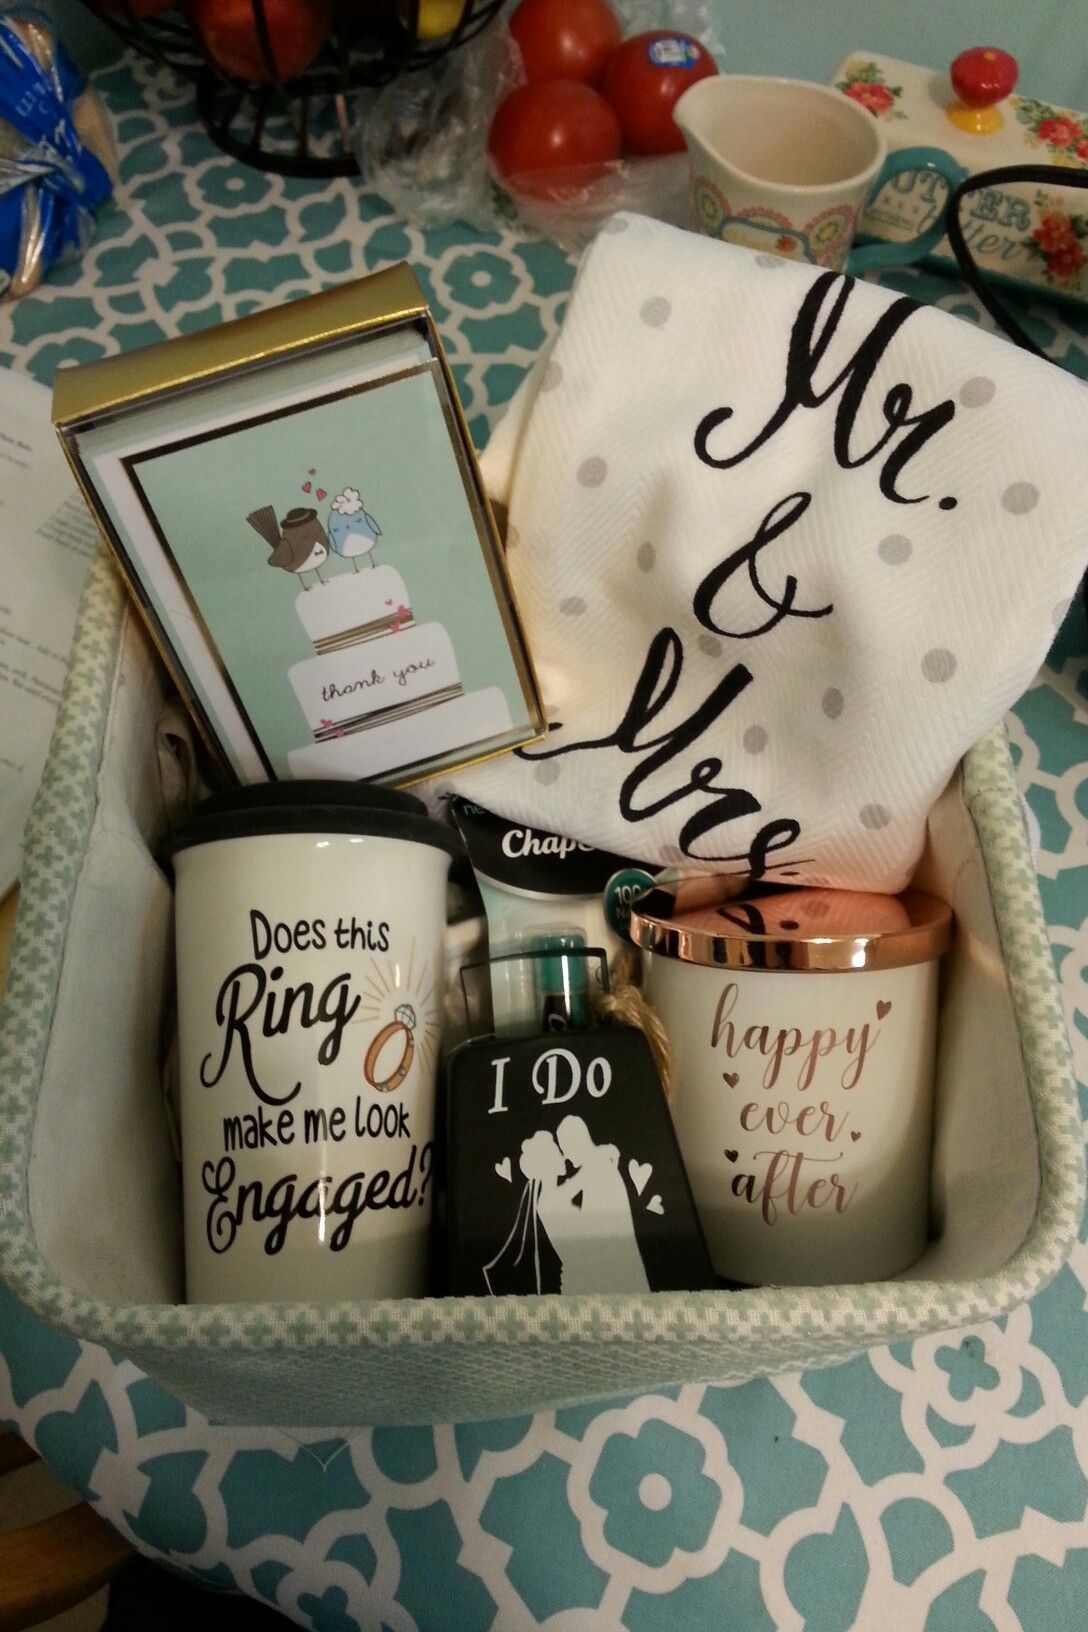 Engagement gift basket  engaged  ring  mugs  wedding  bride  giftbasket b8d6390ddda3